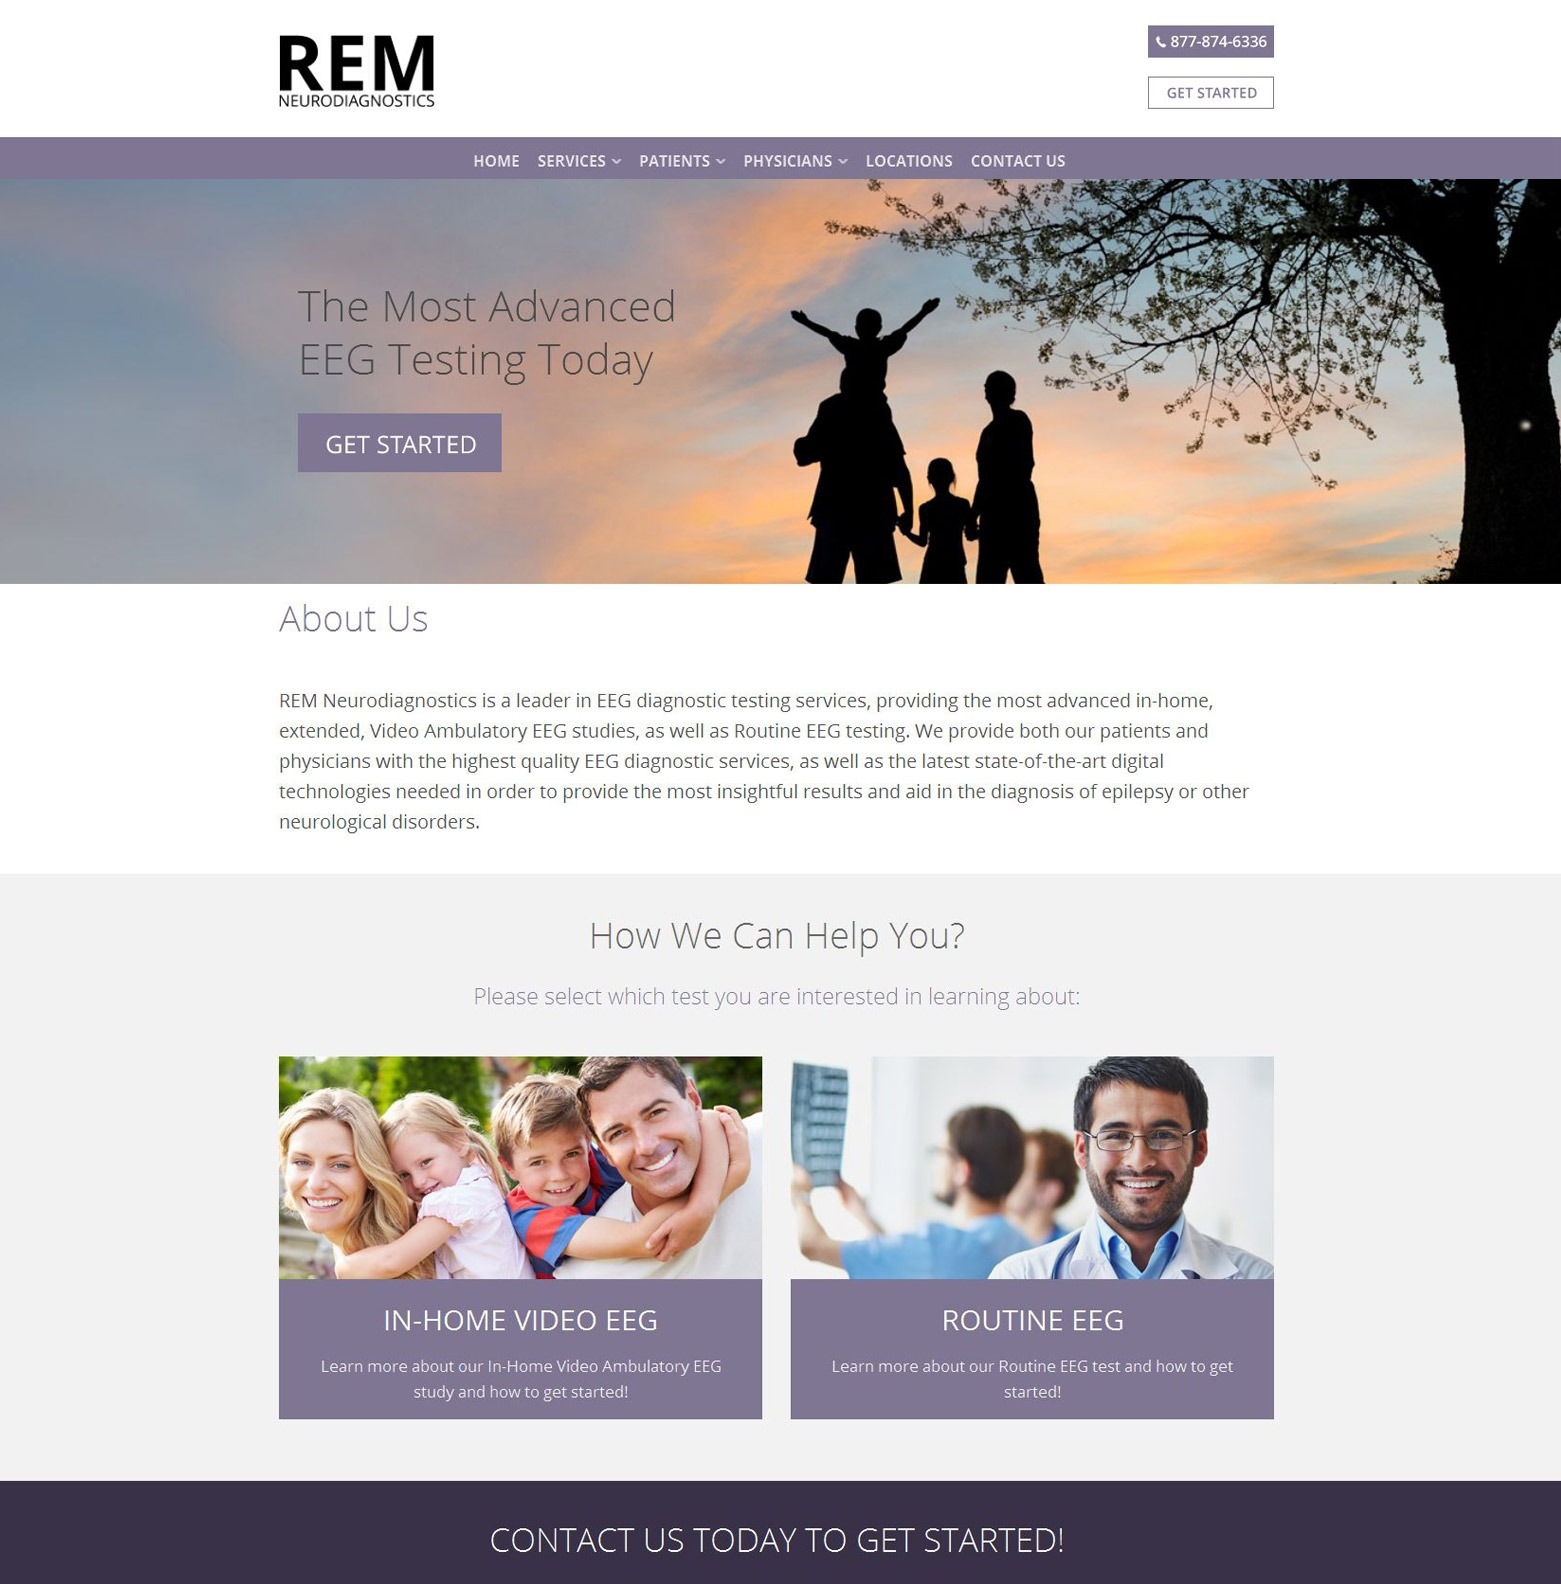 Los Angeles Medical Clinic Web Design Company